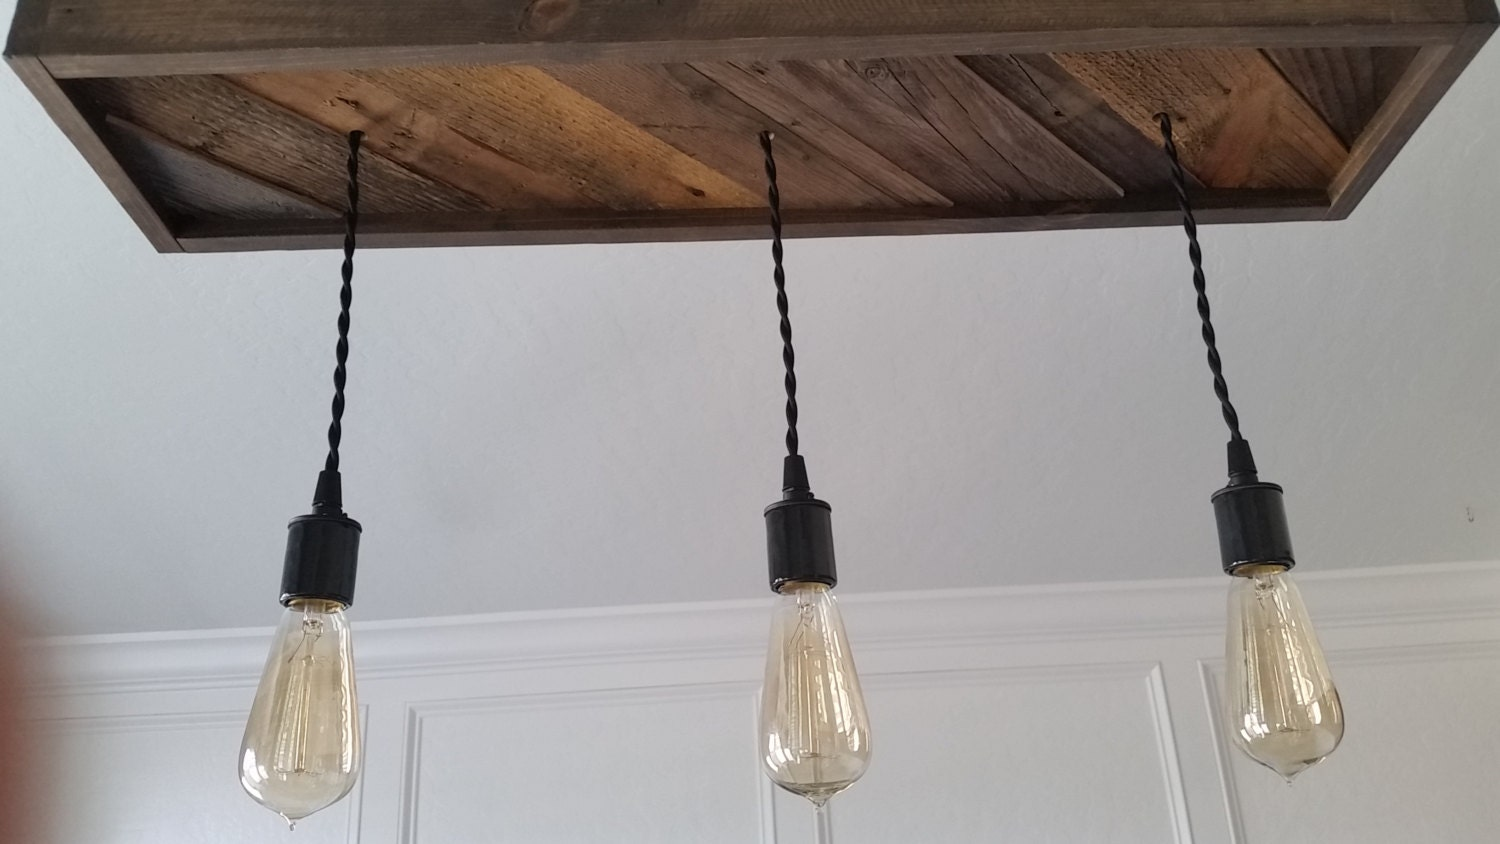 Reclaimed wood canopy pendant light chandelier flush mount for Wood pendant chandelier